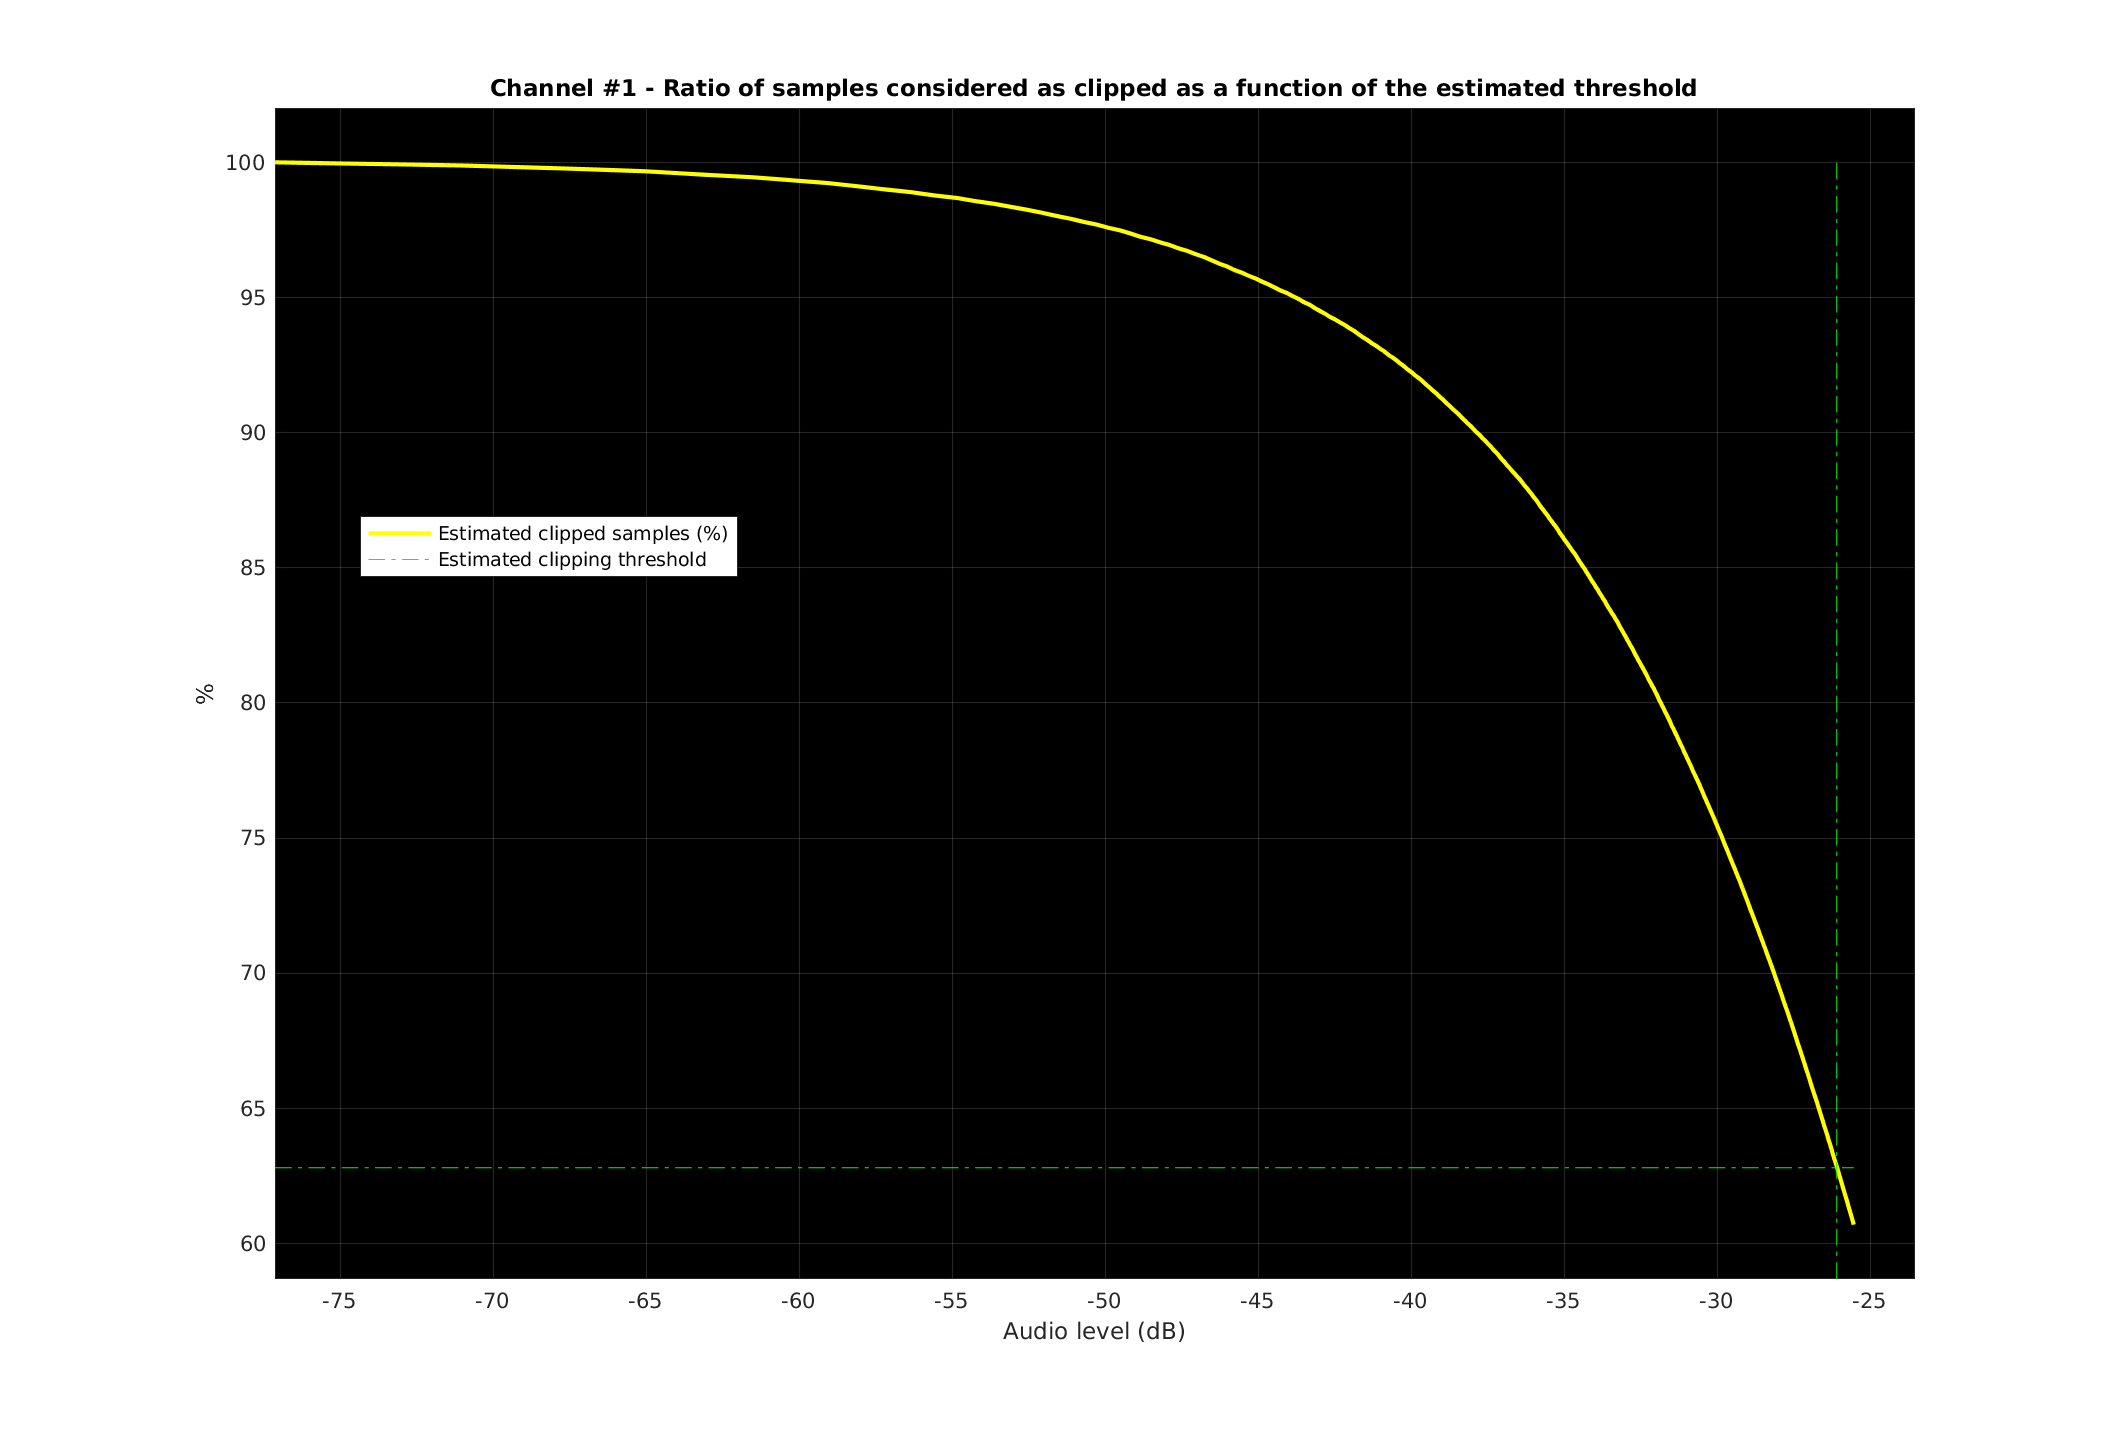 Channel 1 estimated clipping threshold